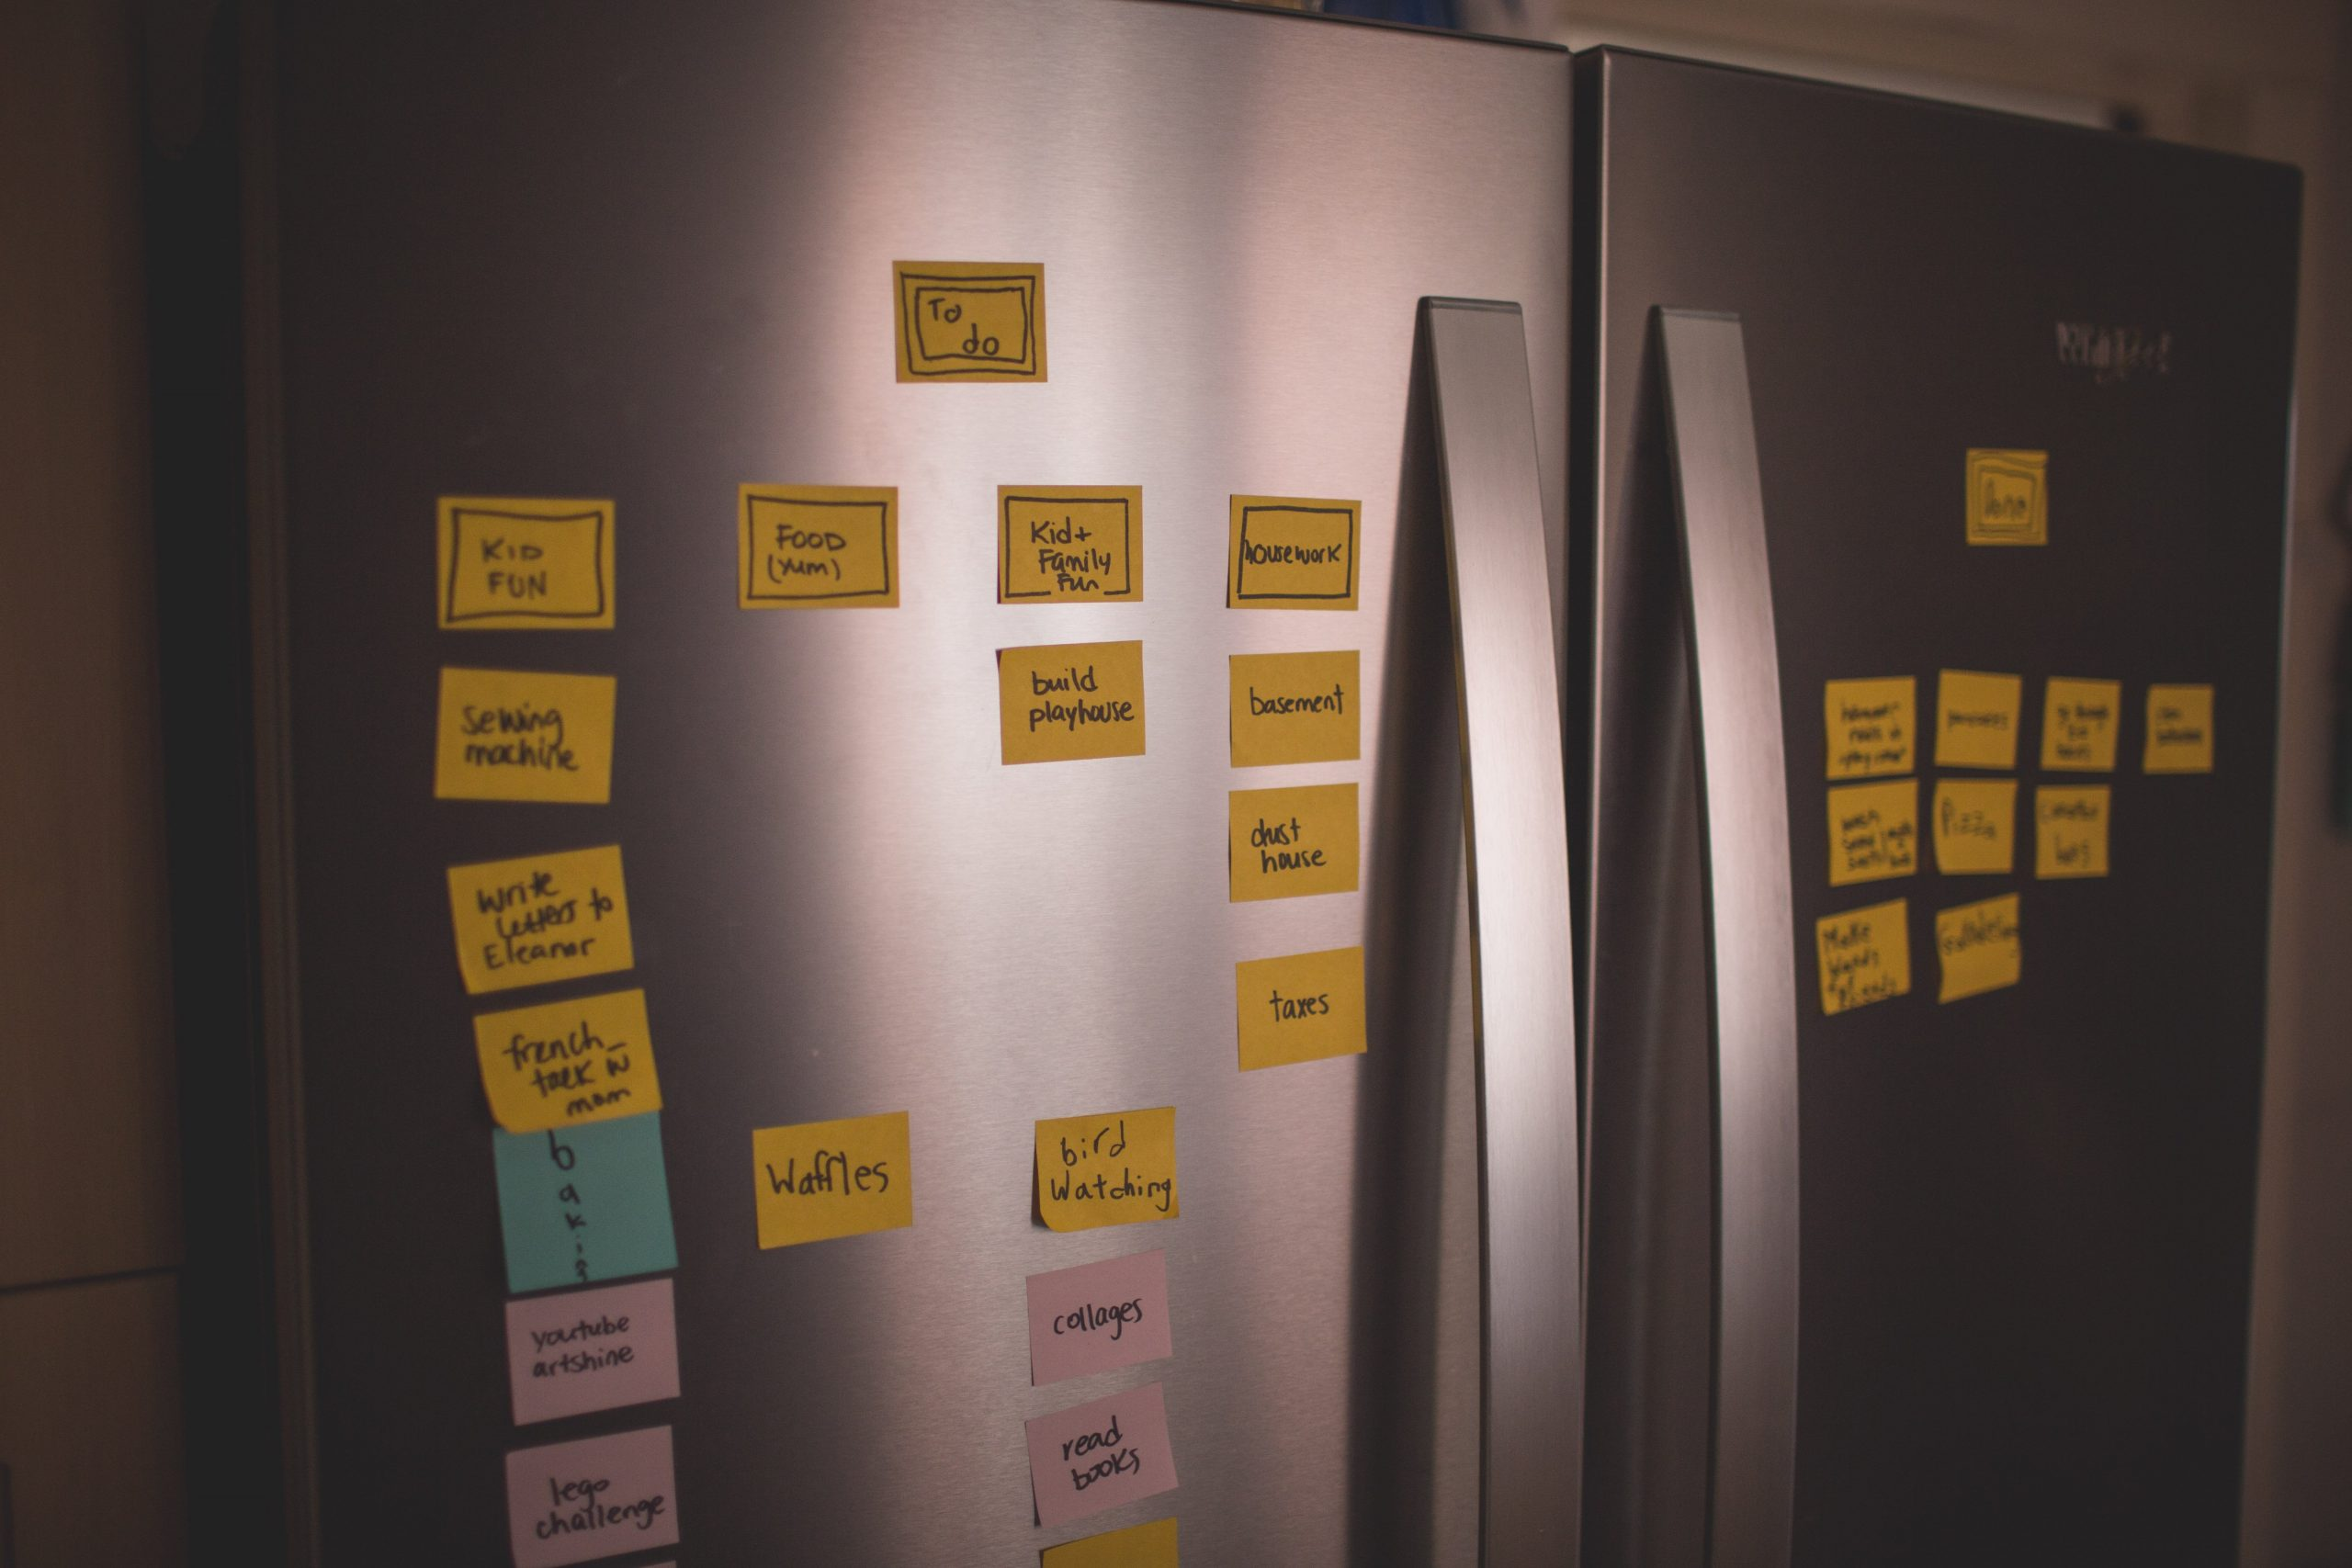 A fridge with post-it notes on it, listing tasks for a family